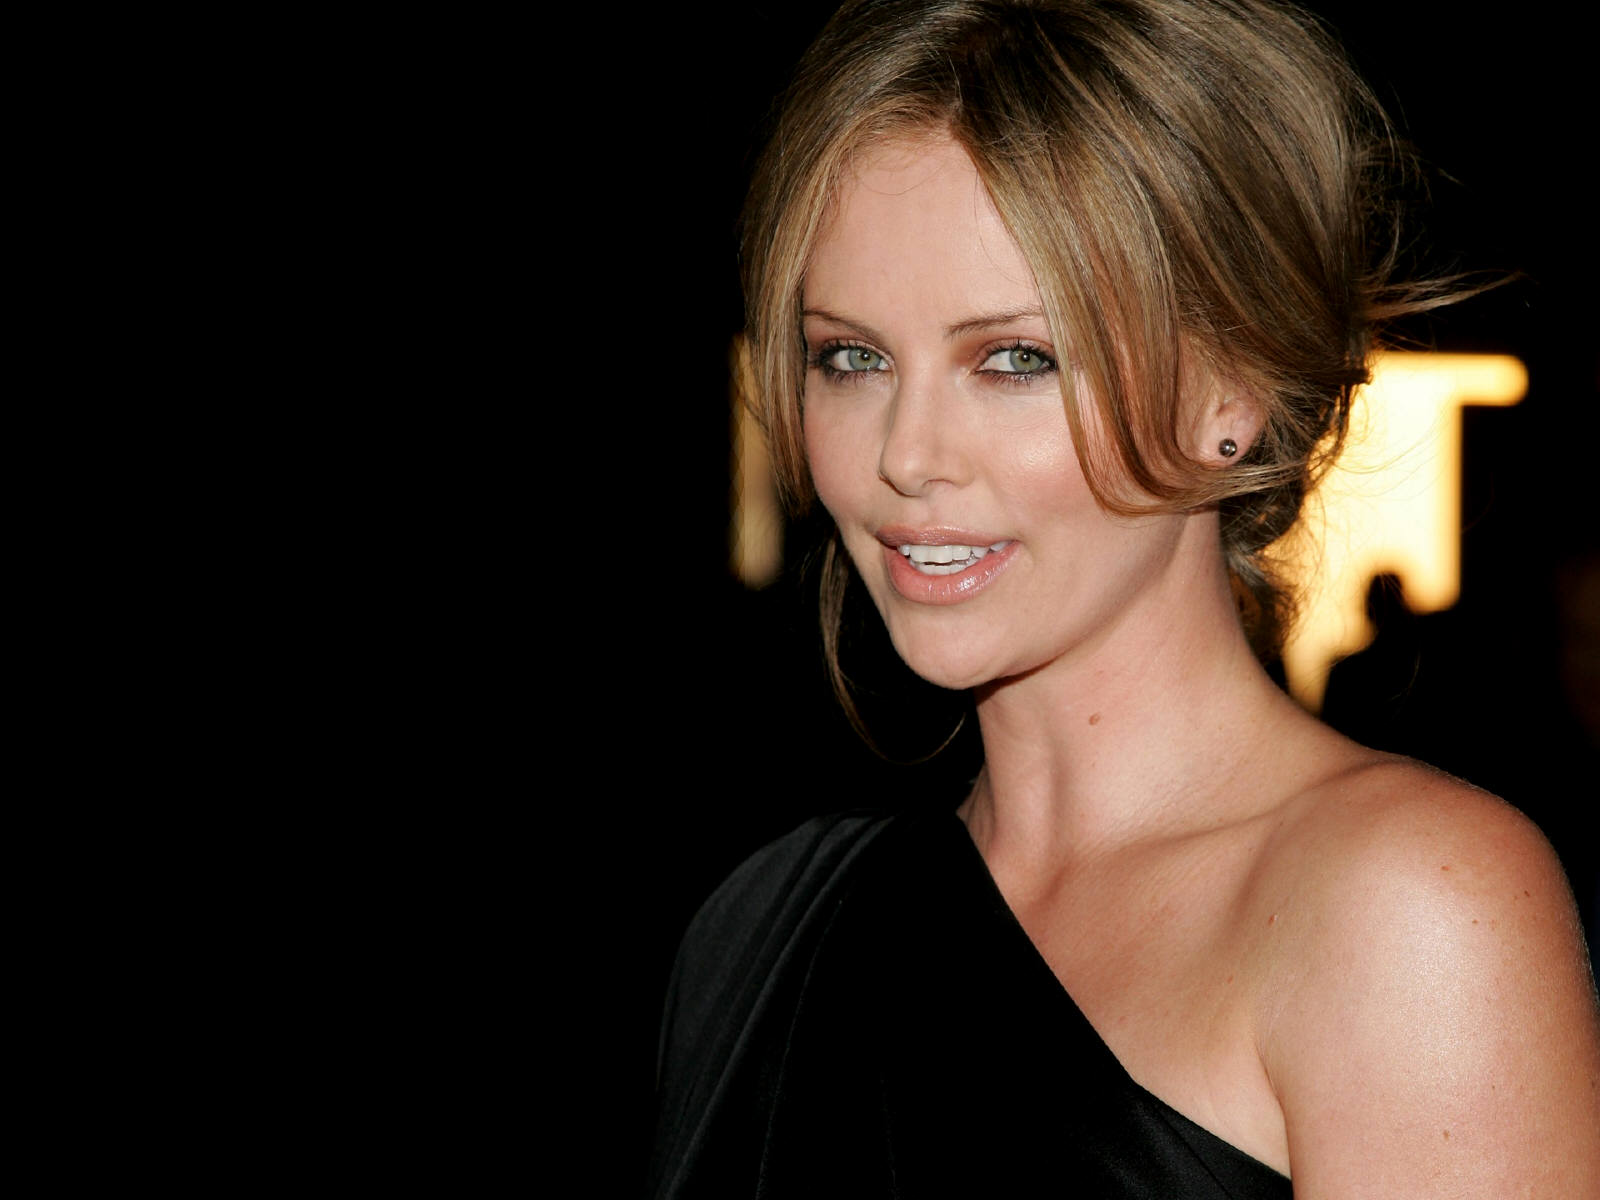 http://2.bp.blogspot.com/-zlFUnOtM_KQ/UEWNyfRbgQI/AAAAAAAAAlY/RY8vKqht6a0/s1600/Charlize+Theron+Wallpapers+-+3.jpg